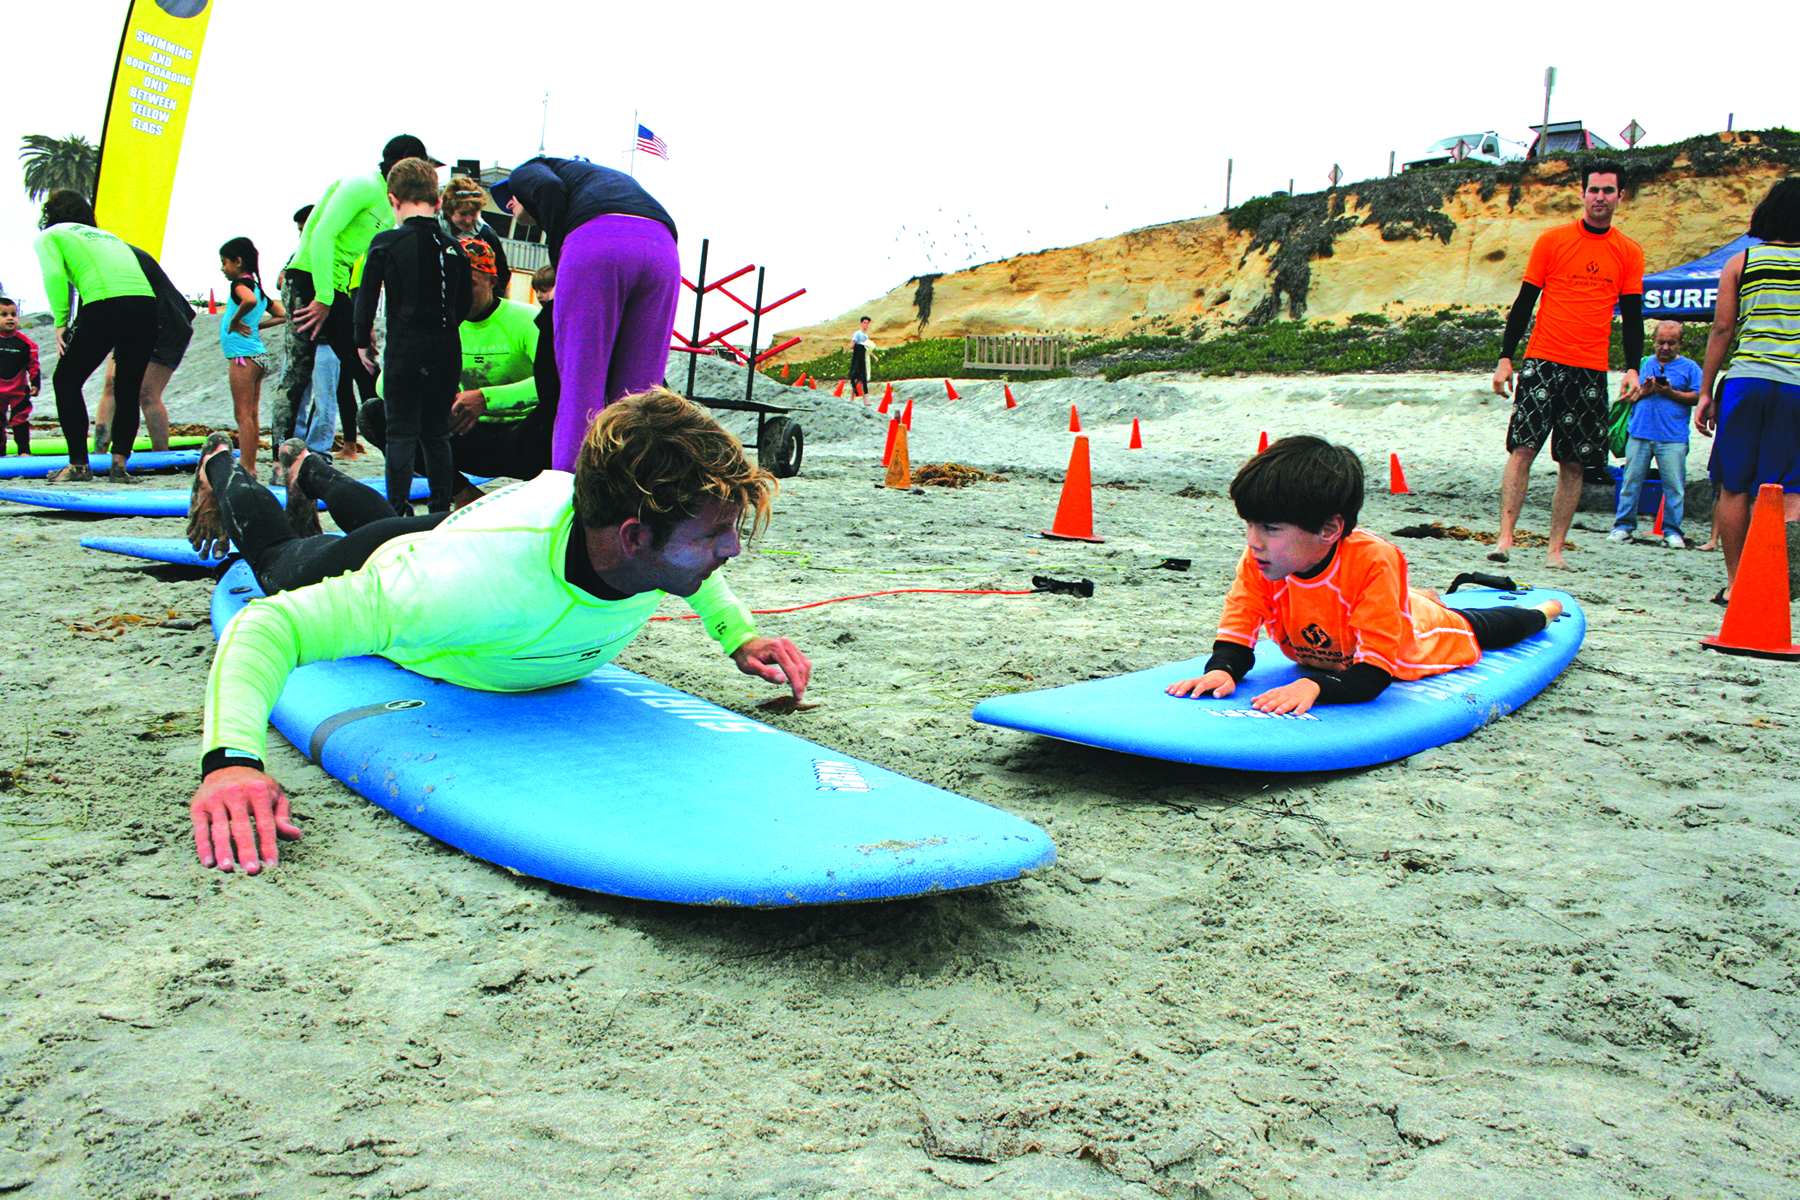 Surf lessons bring smiles to youth, Wounded Warriors